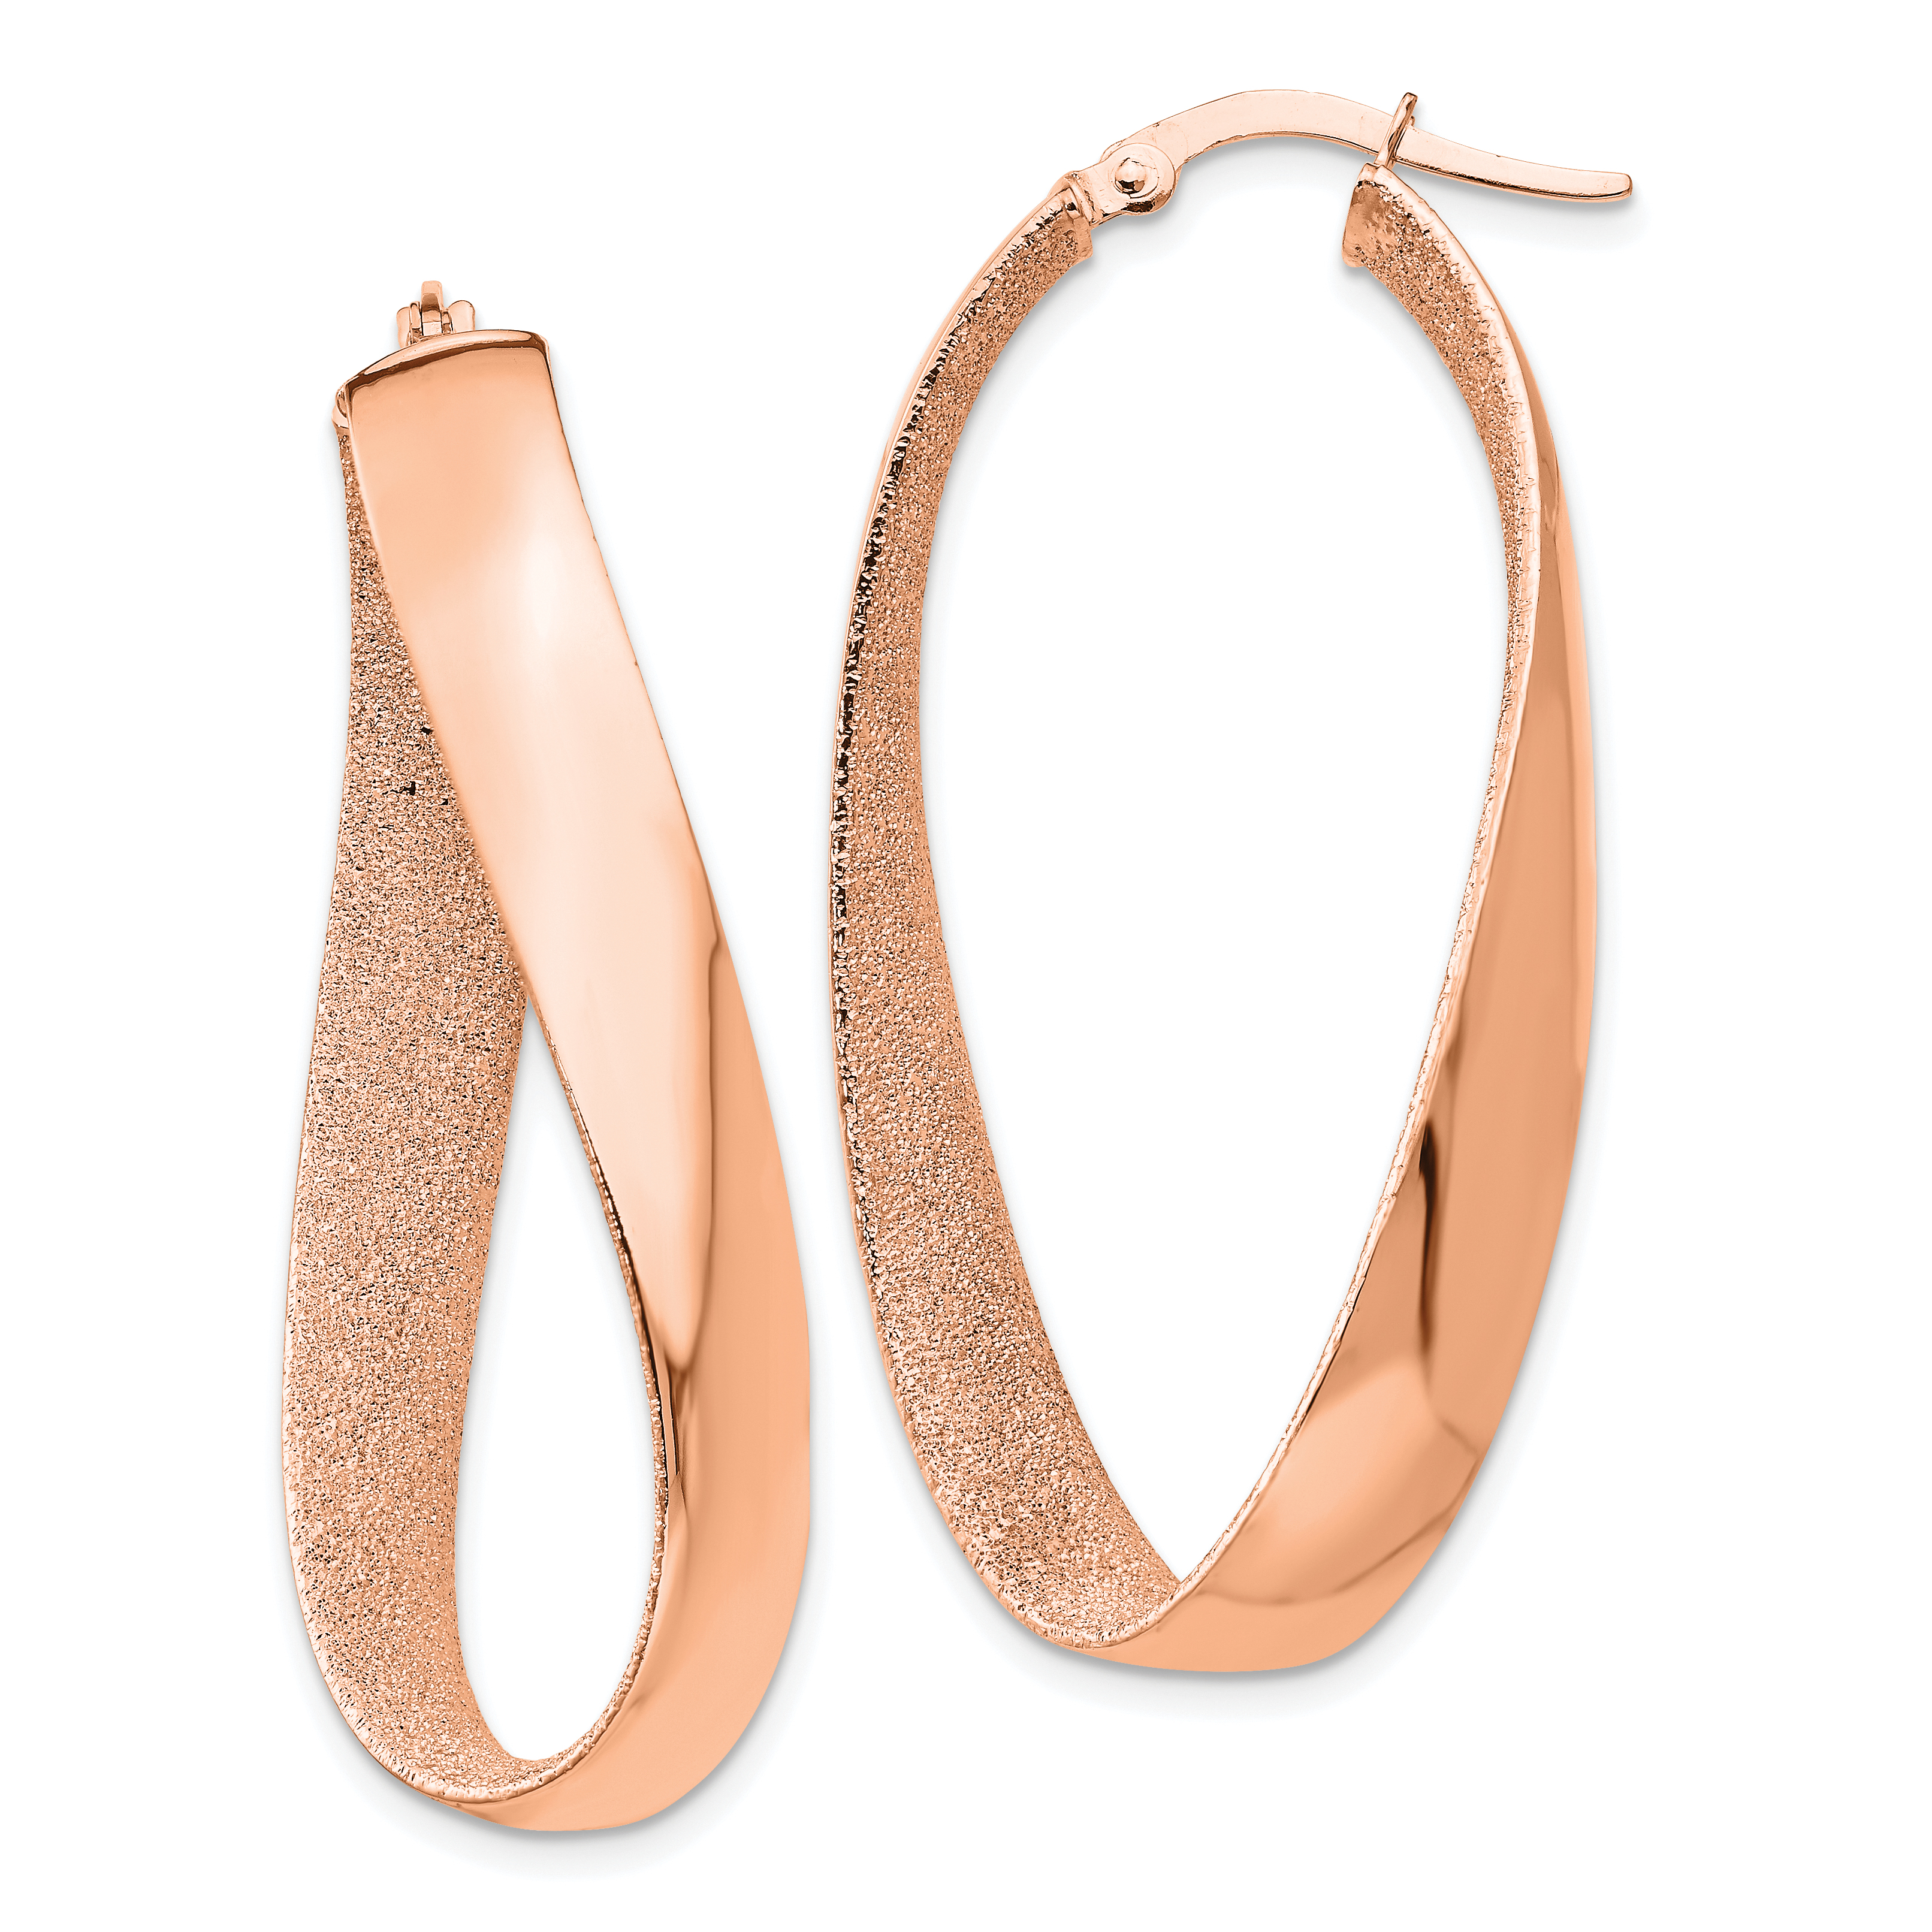 d3313ab3785a4 Details about 14k Rose Gold Plated Twisted Hoop Earrings Ear Hoops Set Oval  Fine Jewelry